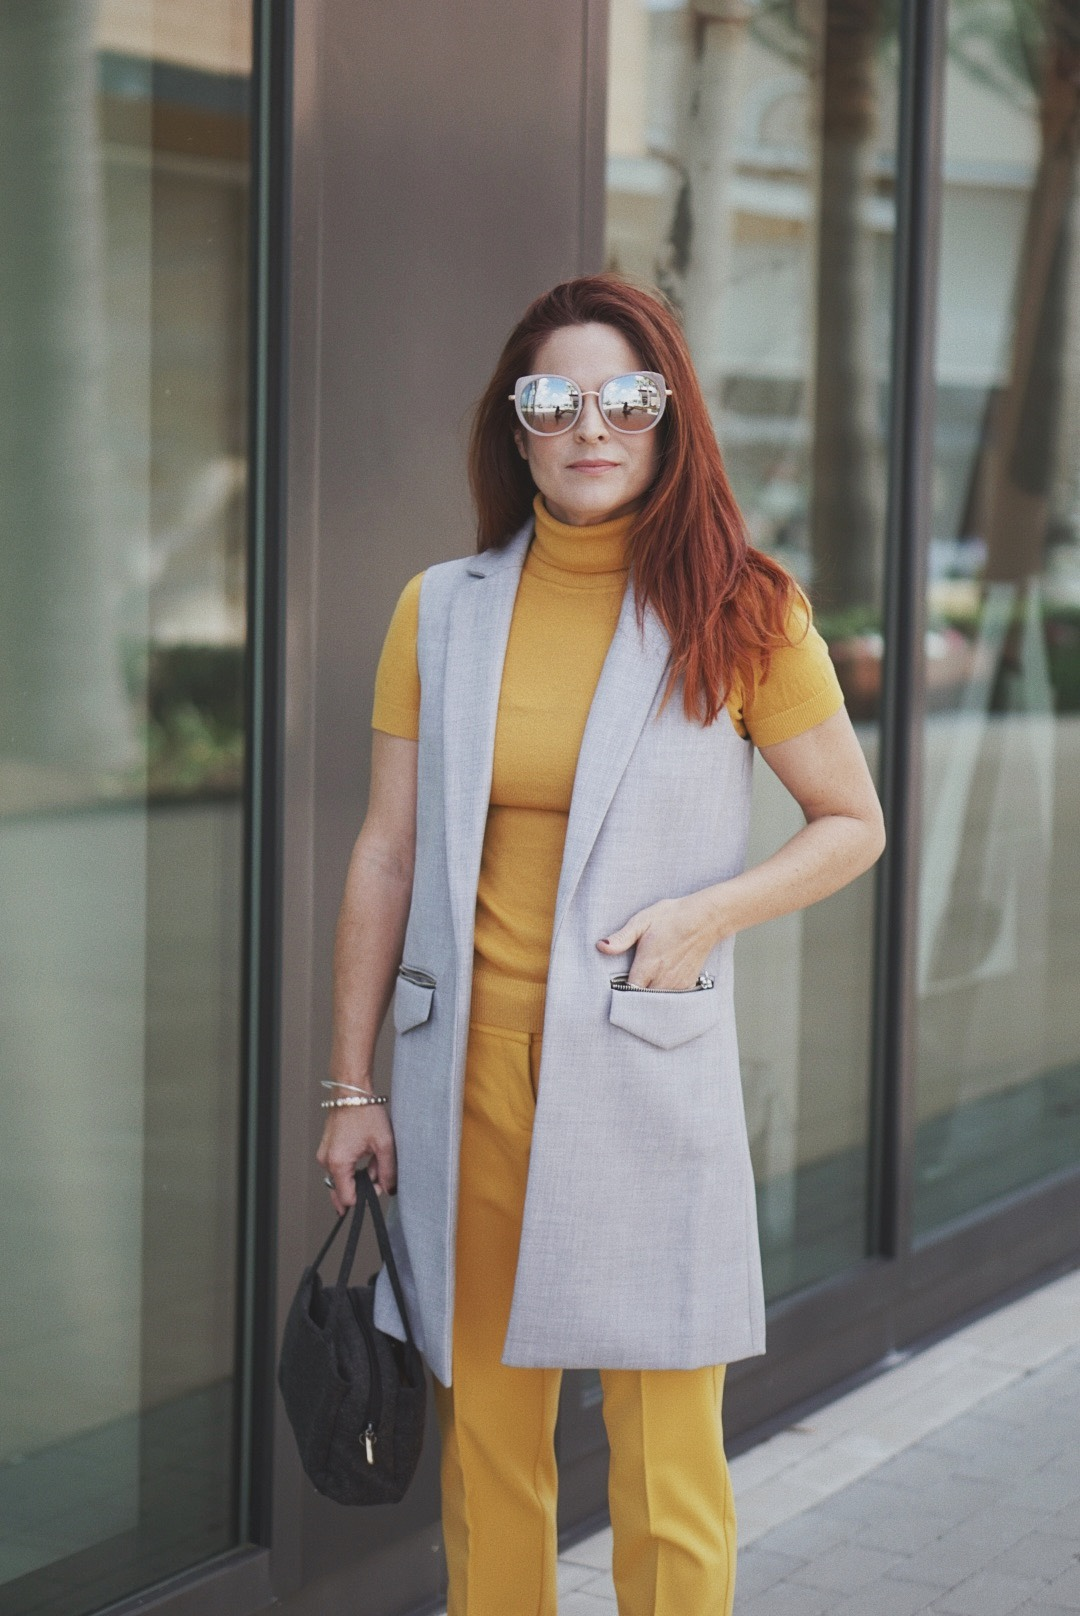 yellow outfit inspiration, how to style yellow, monochrome looks